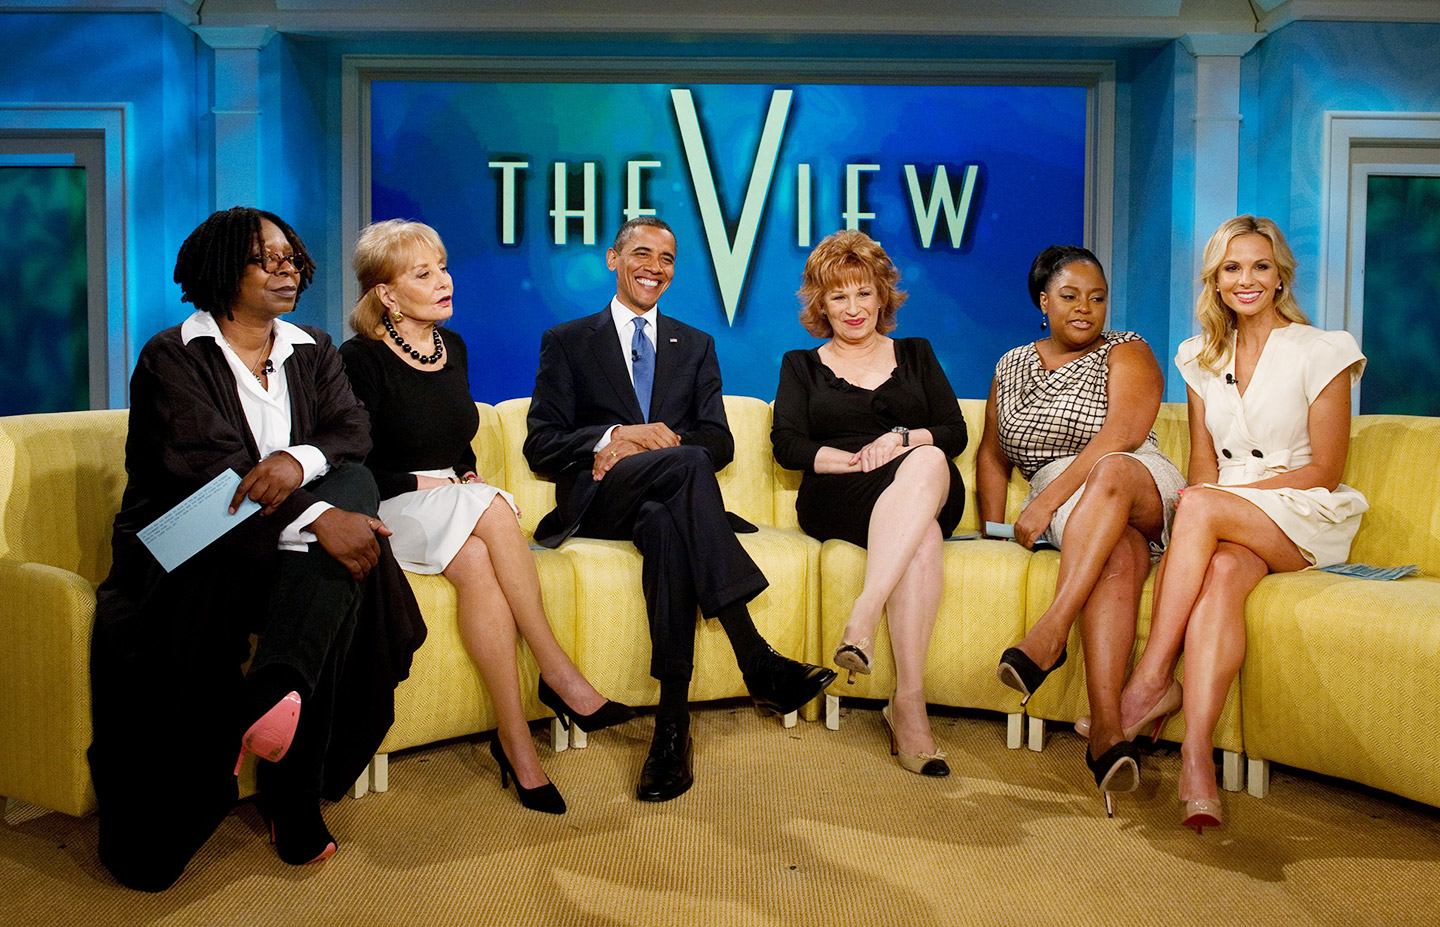 Barbara Walters in the show The View with Barack Obama and others